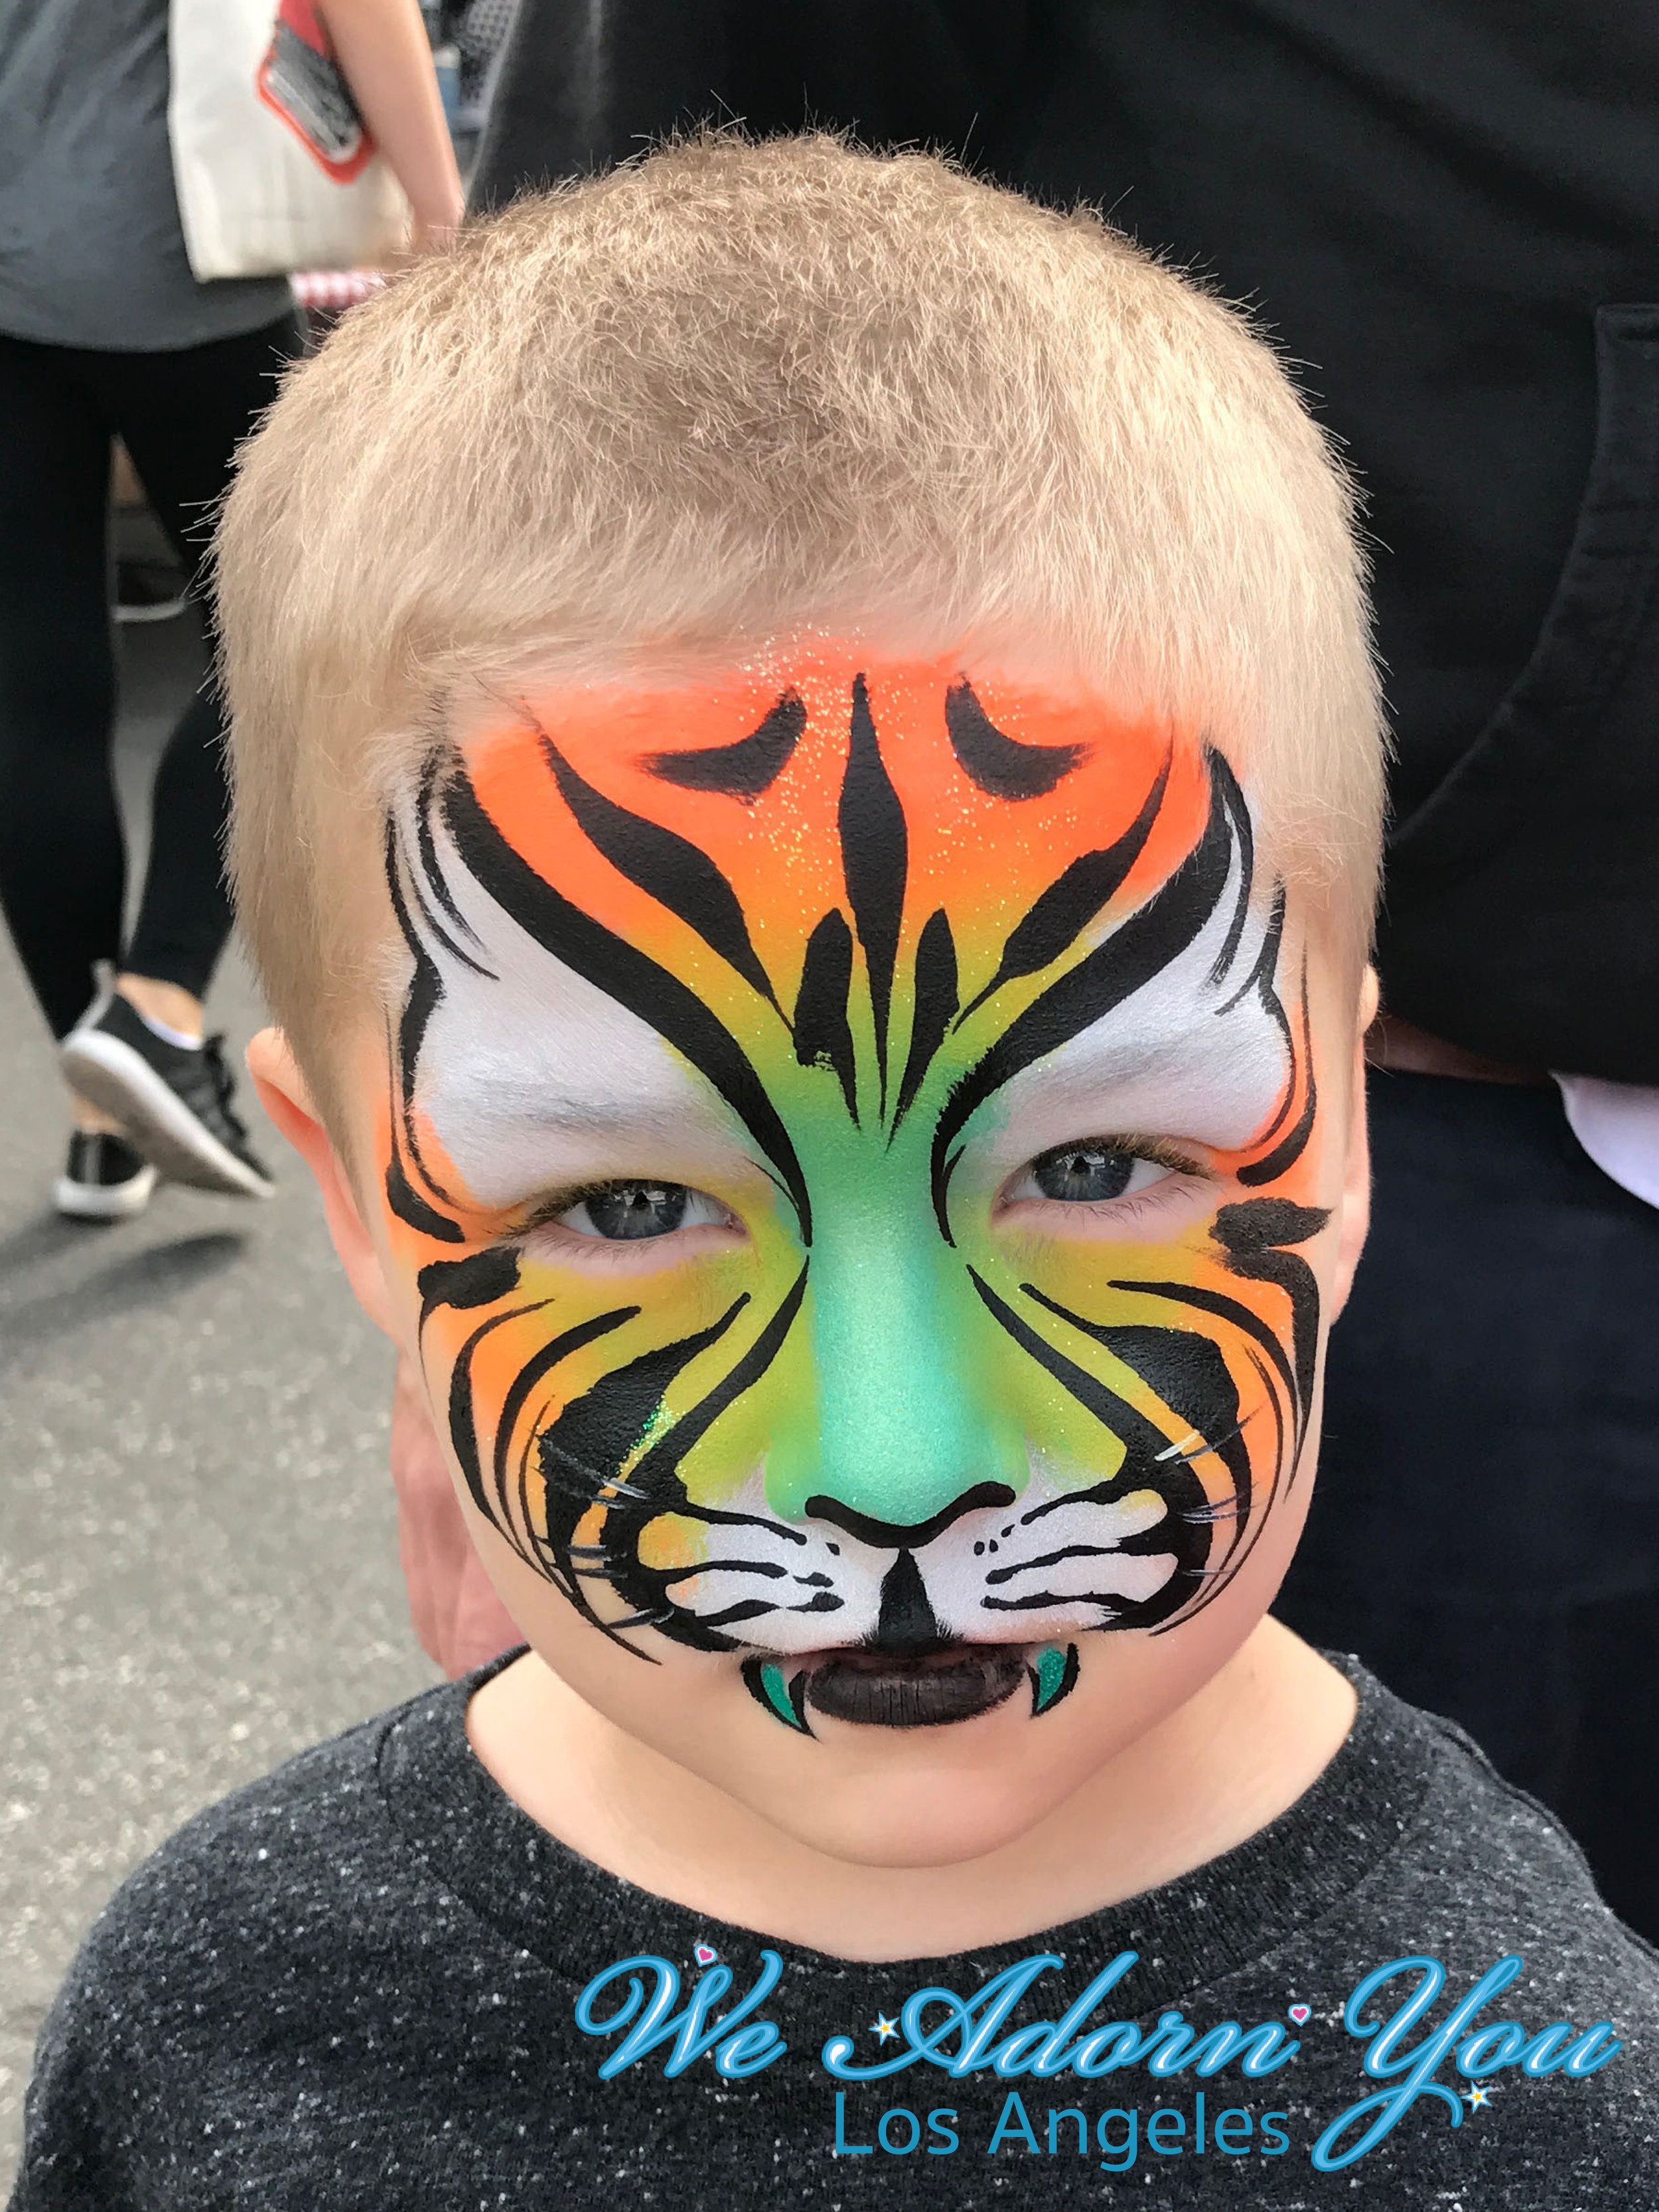 We Adorn You Los Angeles Face Painting Green Tiger.jpg